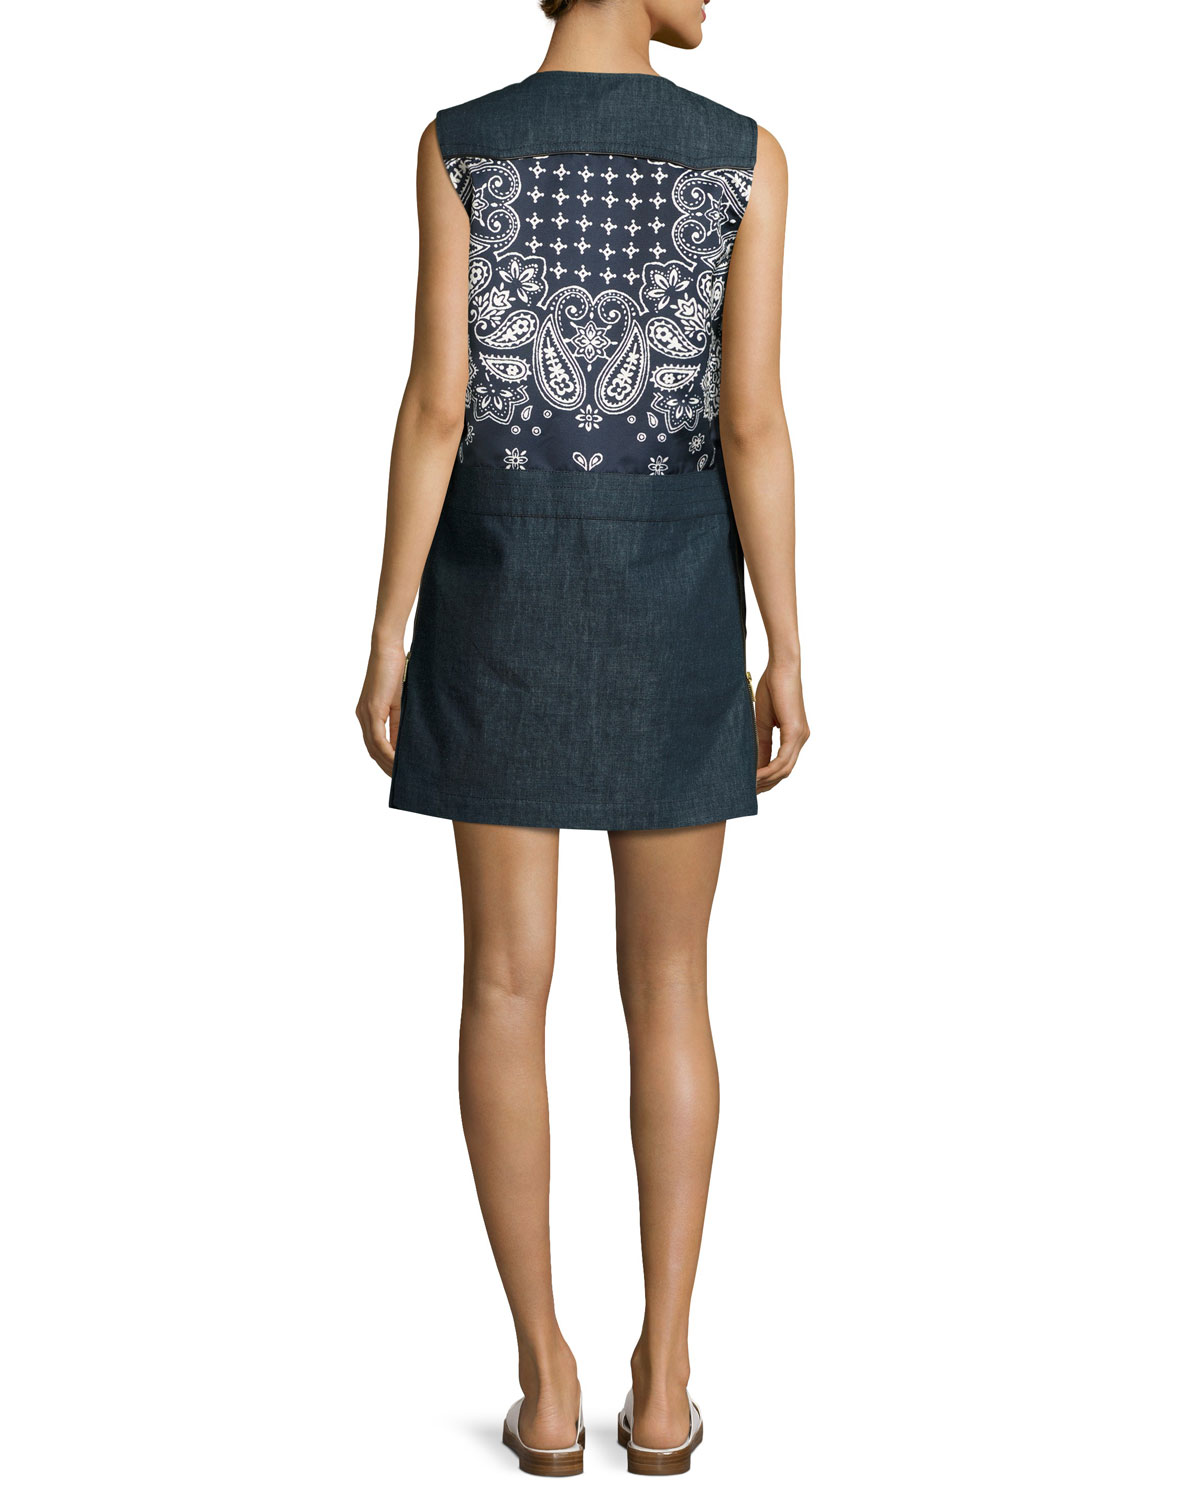 Sleeveless Shift Dress Moncler 2MIJuZWJ5